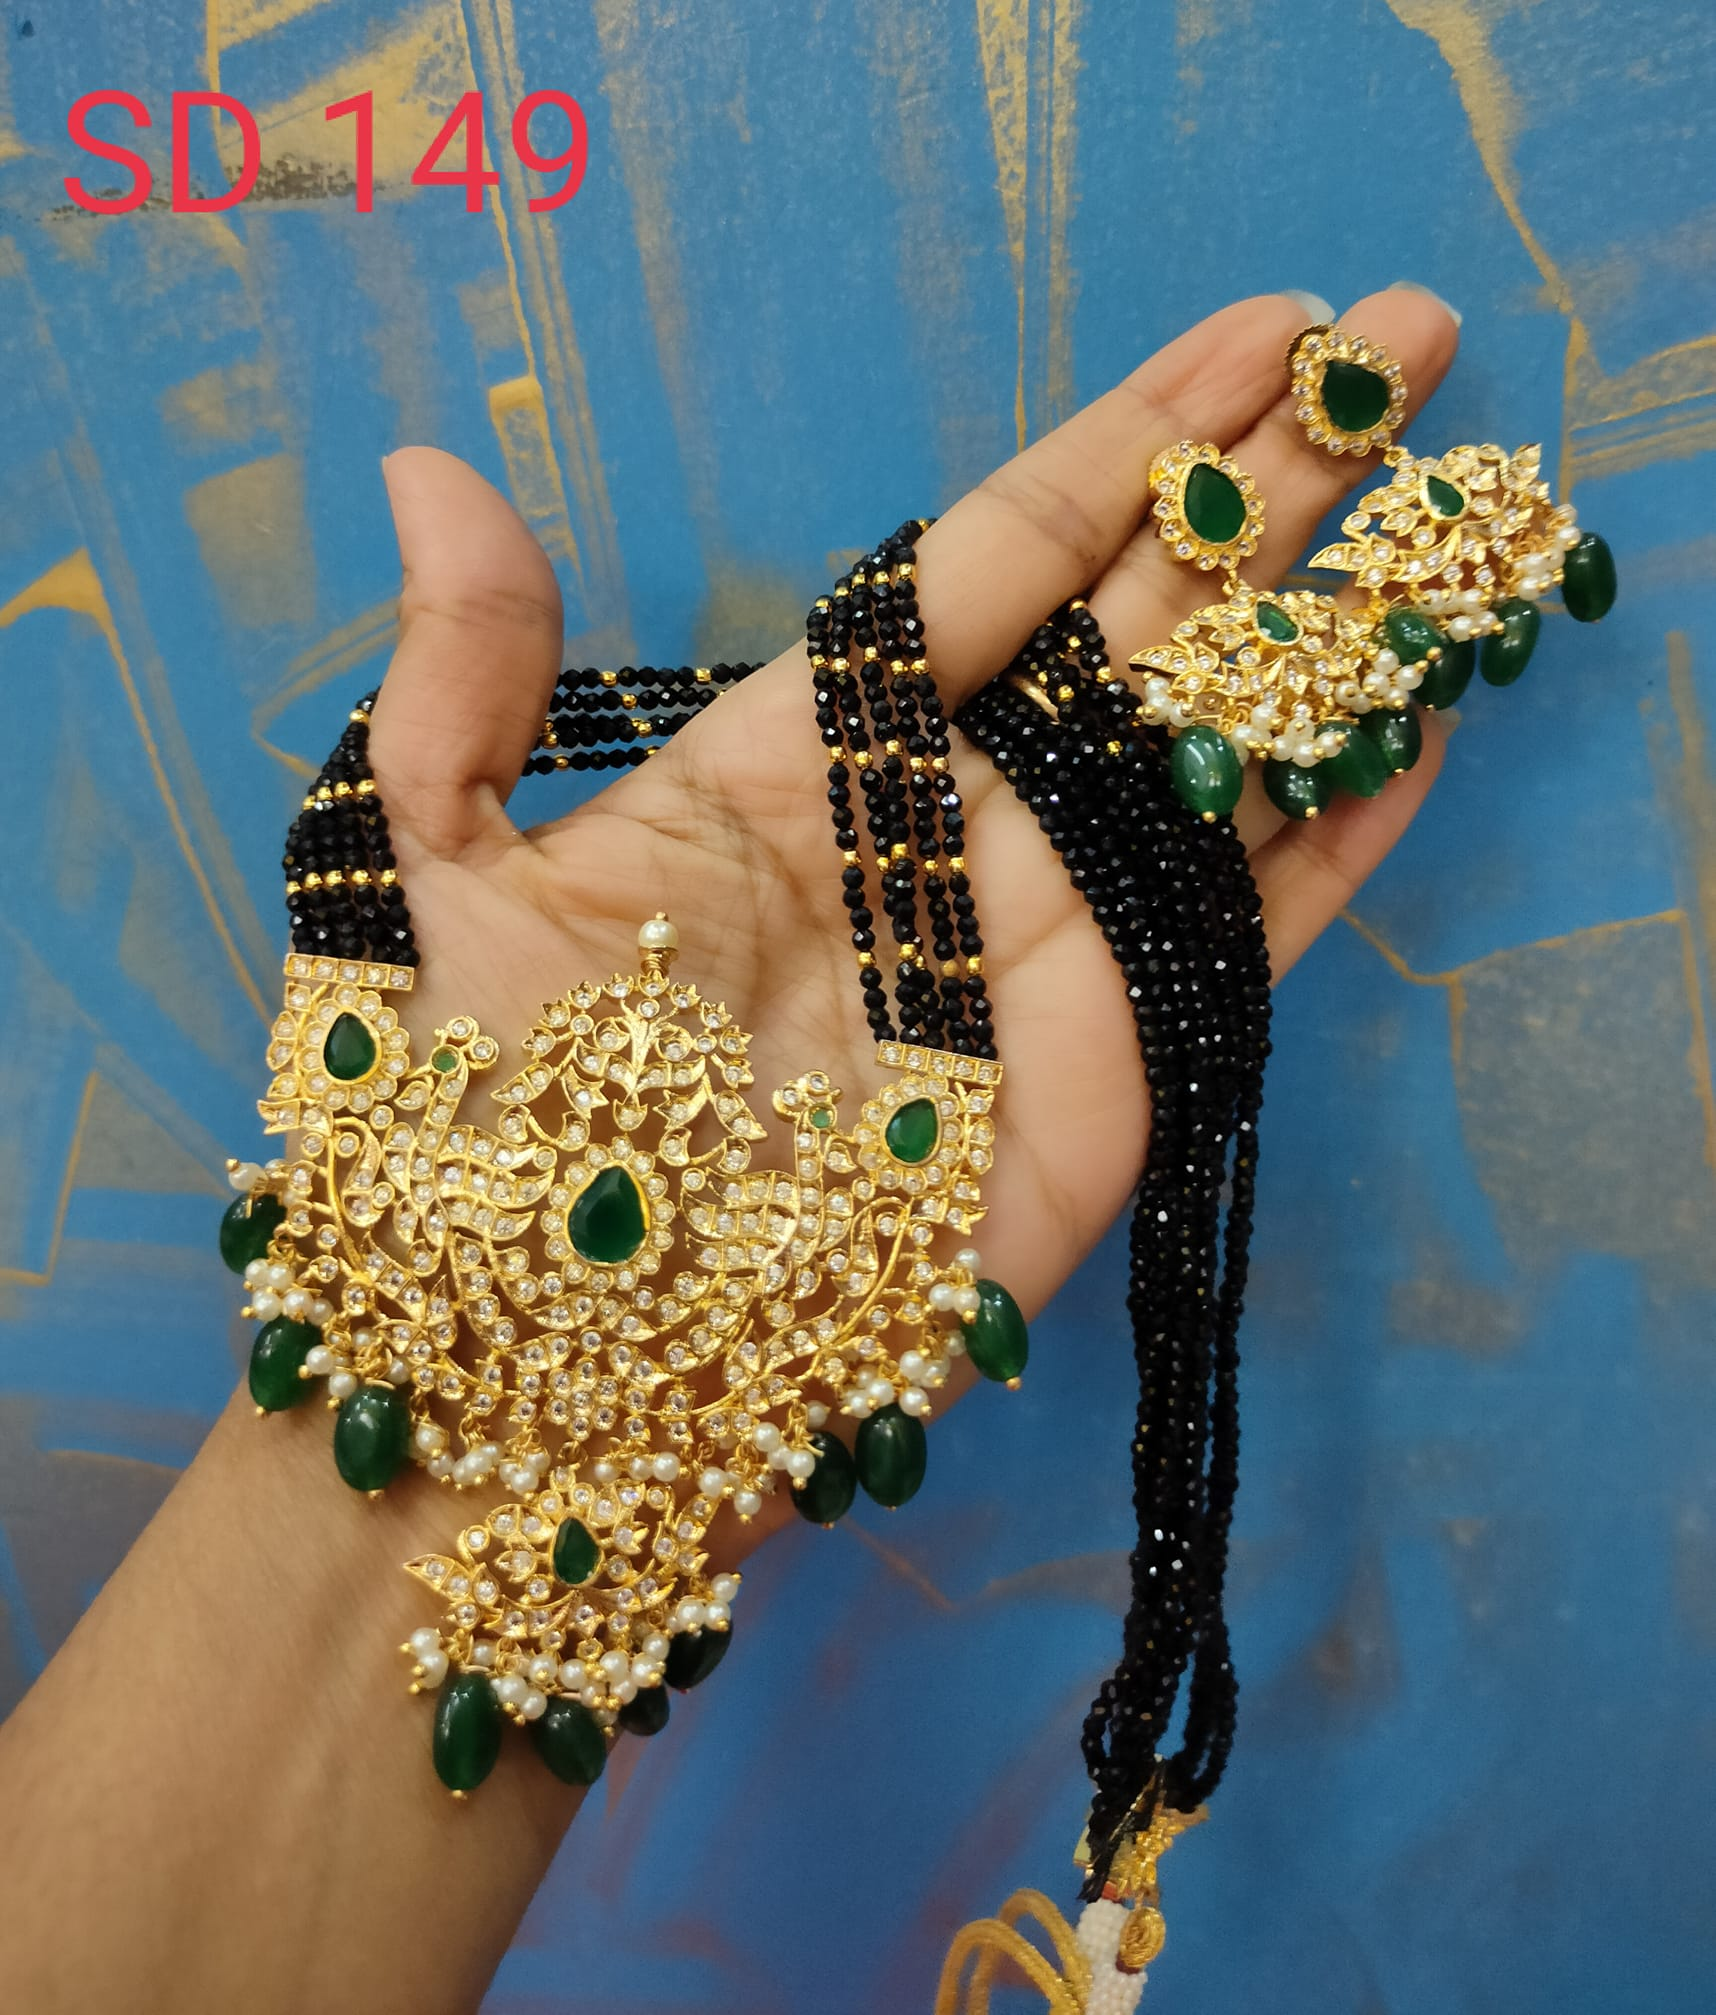 Beautiful Raniharam Price 1690/- free shipping What's app 8897313363 1 gram gold designs one gram gold items 1 gram gold bridal jewellery sets with price